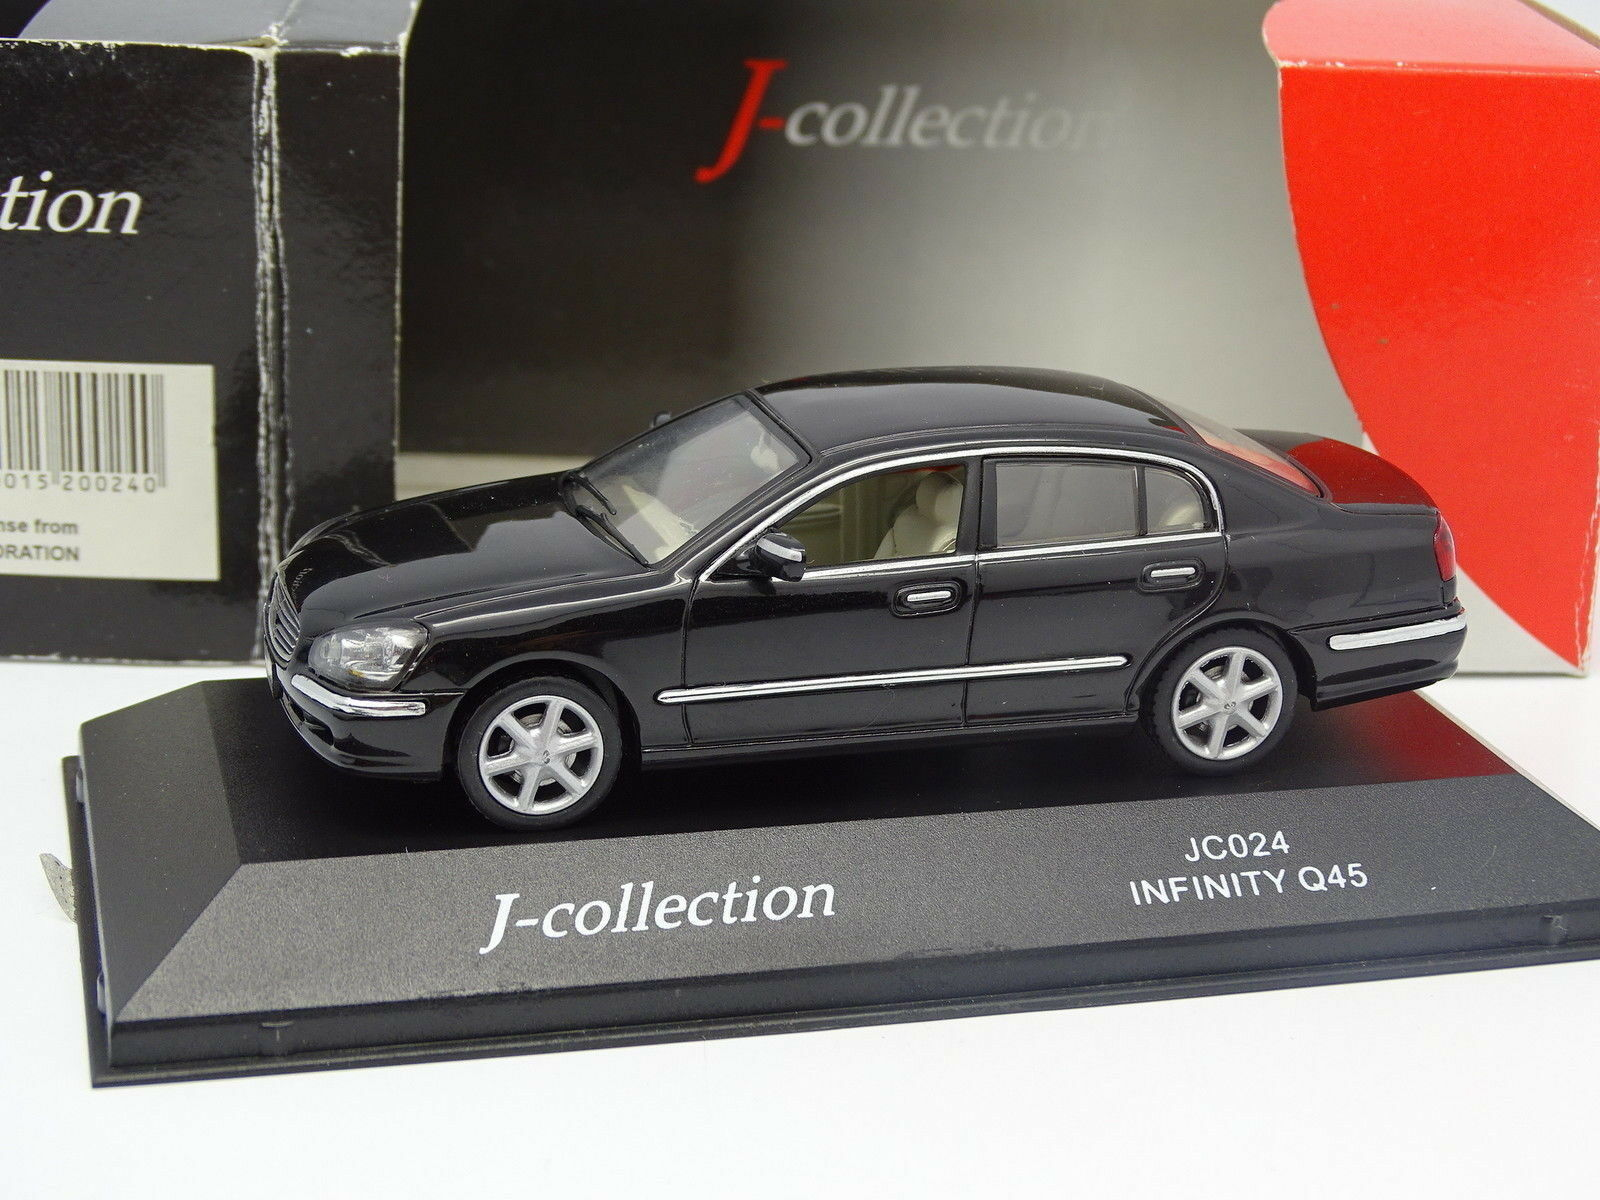 J Collection 1 43 - Infiniti Q45 Negra